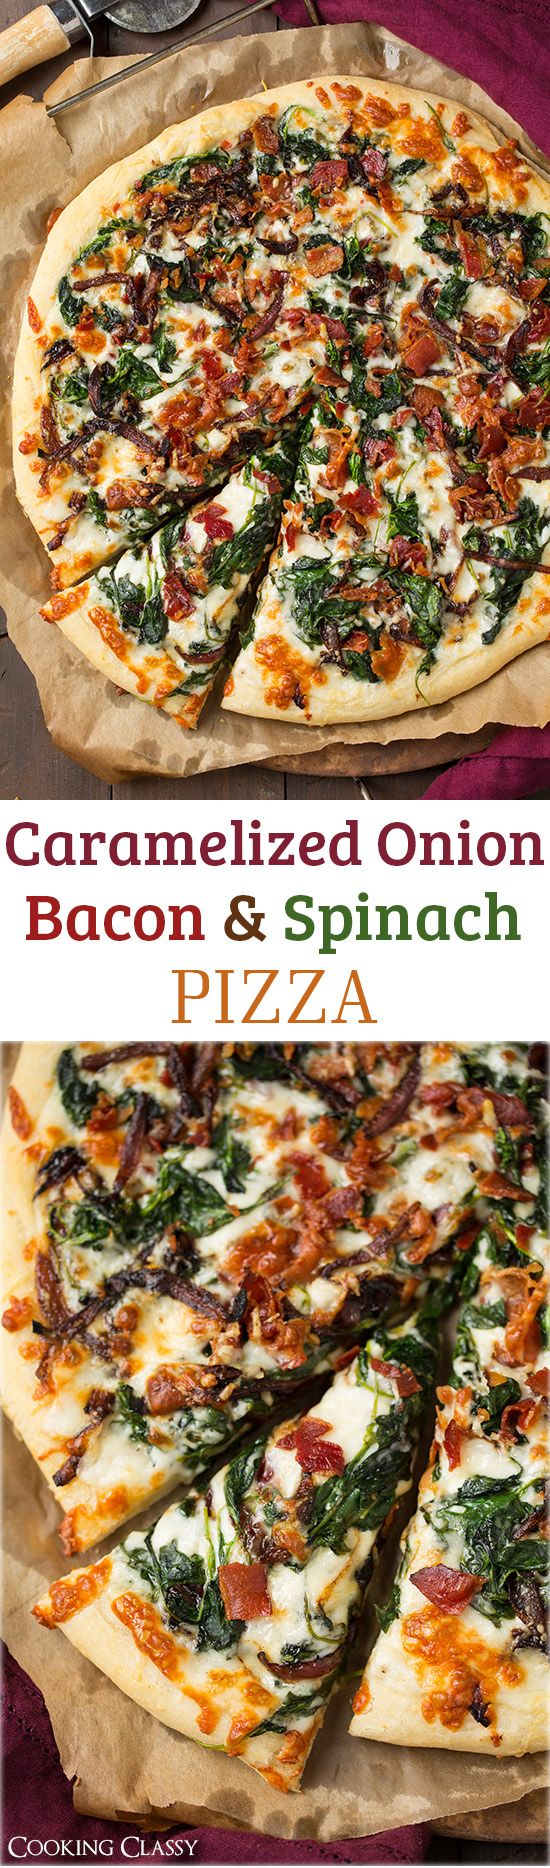 Caramelized Onion, Bacon and Spinach Pizza: layered with white sauce, mozzarella, parmesan, crispy bacon, fresh spinach, and caramelized onions.